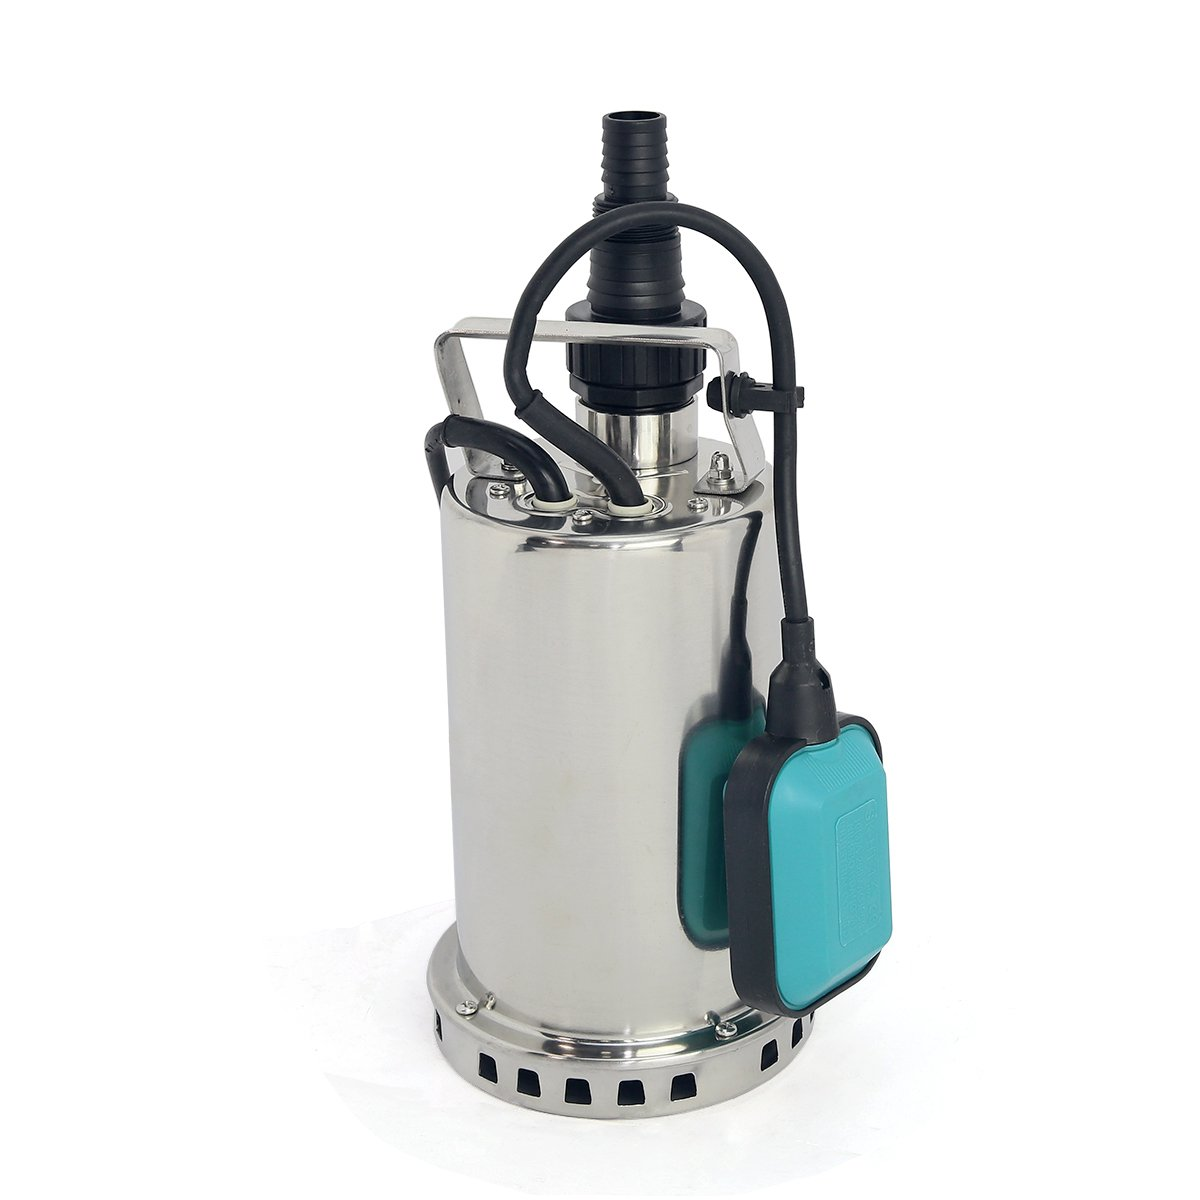 1 HP Stainless Steel Submersible Pump, Sump Pump XtremepowerUS